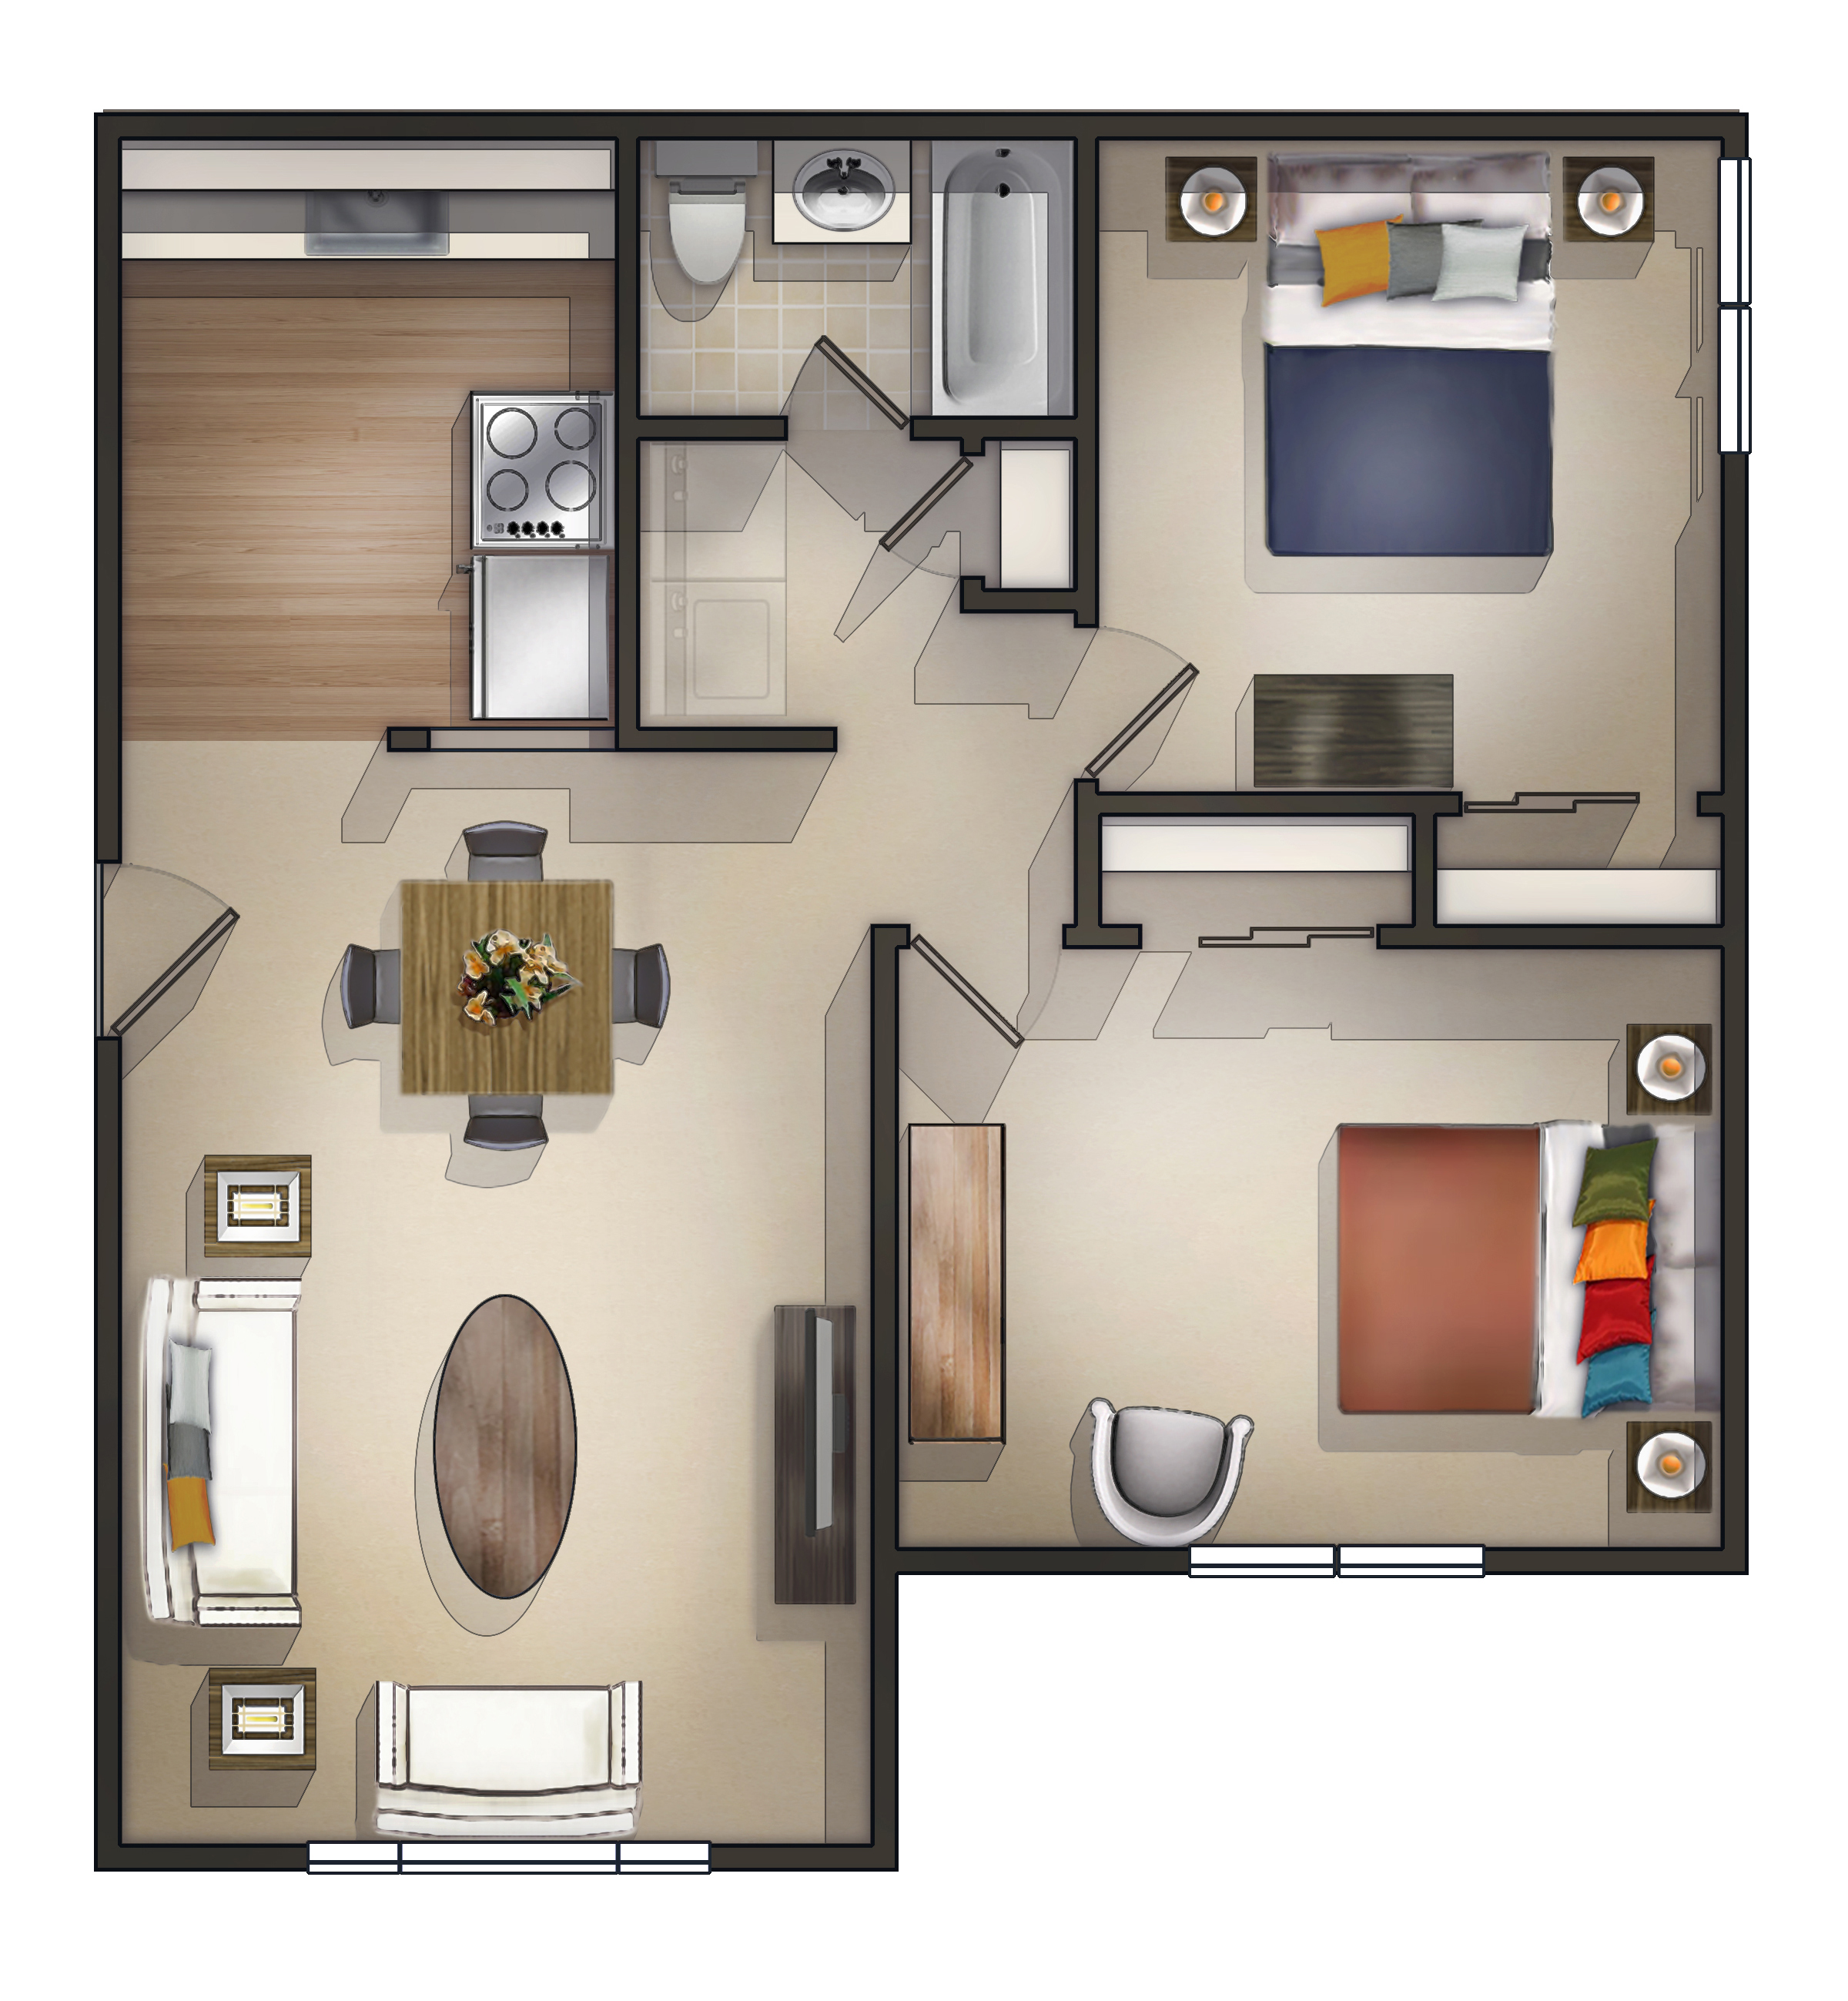 2 bedroom apartment in sanford me at sanford manor apartments for Design layout 2 bedroom flat